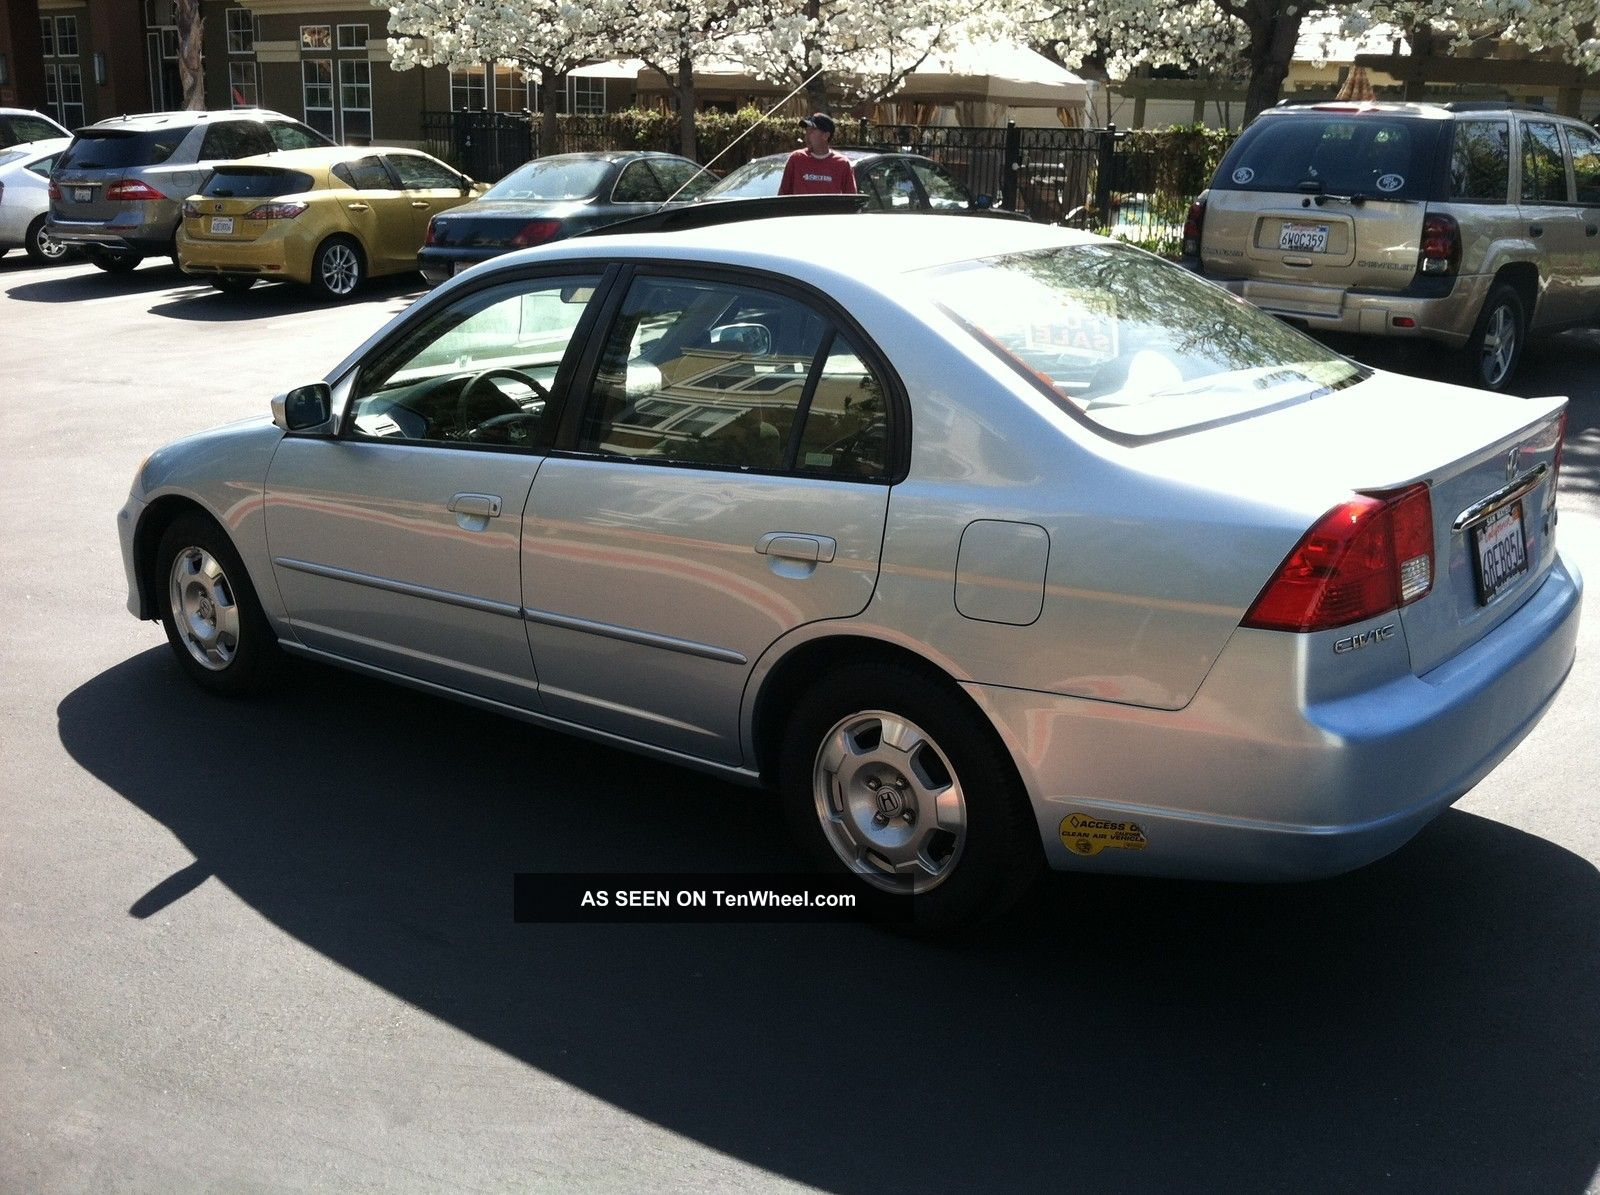 2003 Honda Civic Hybrid 45 Mpg